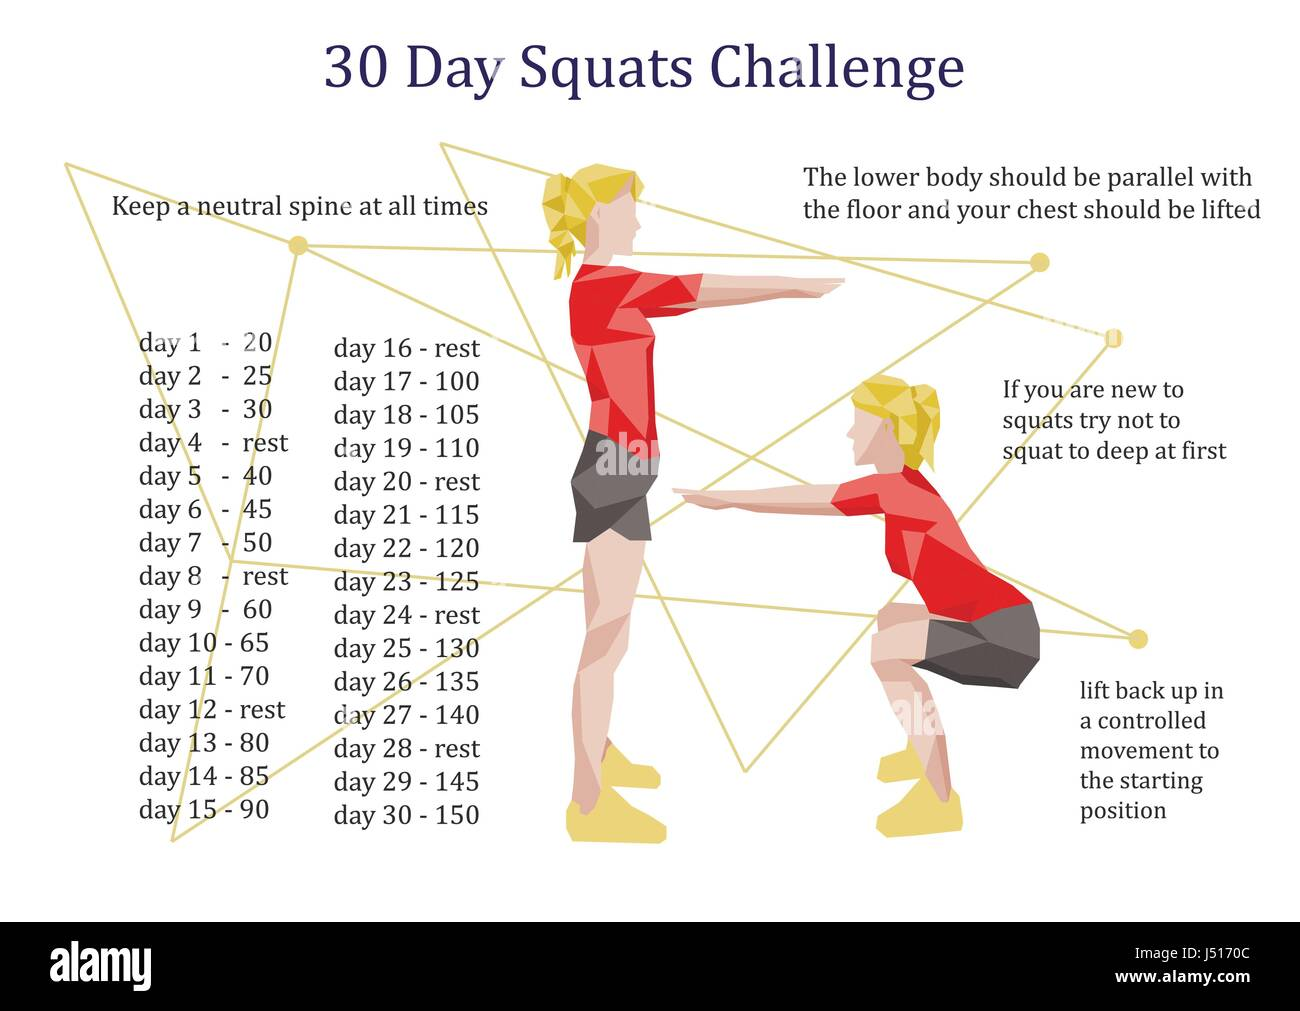 30 days squats challenge infographic Stock Vector Art